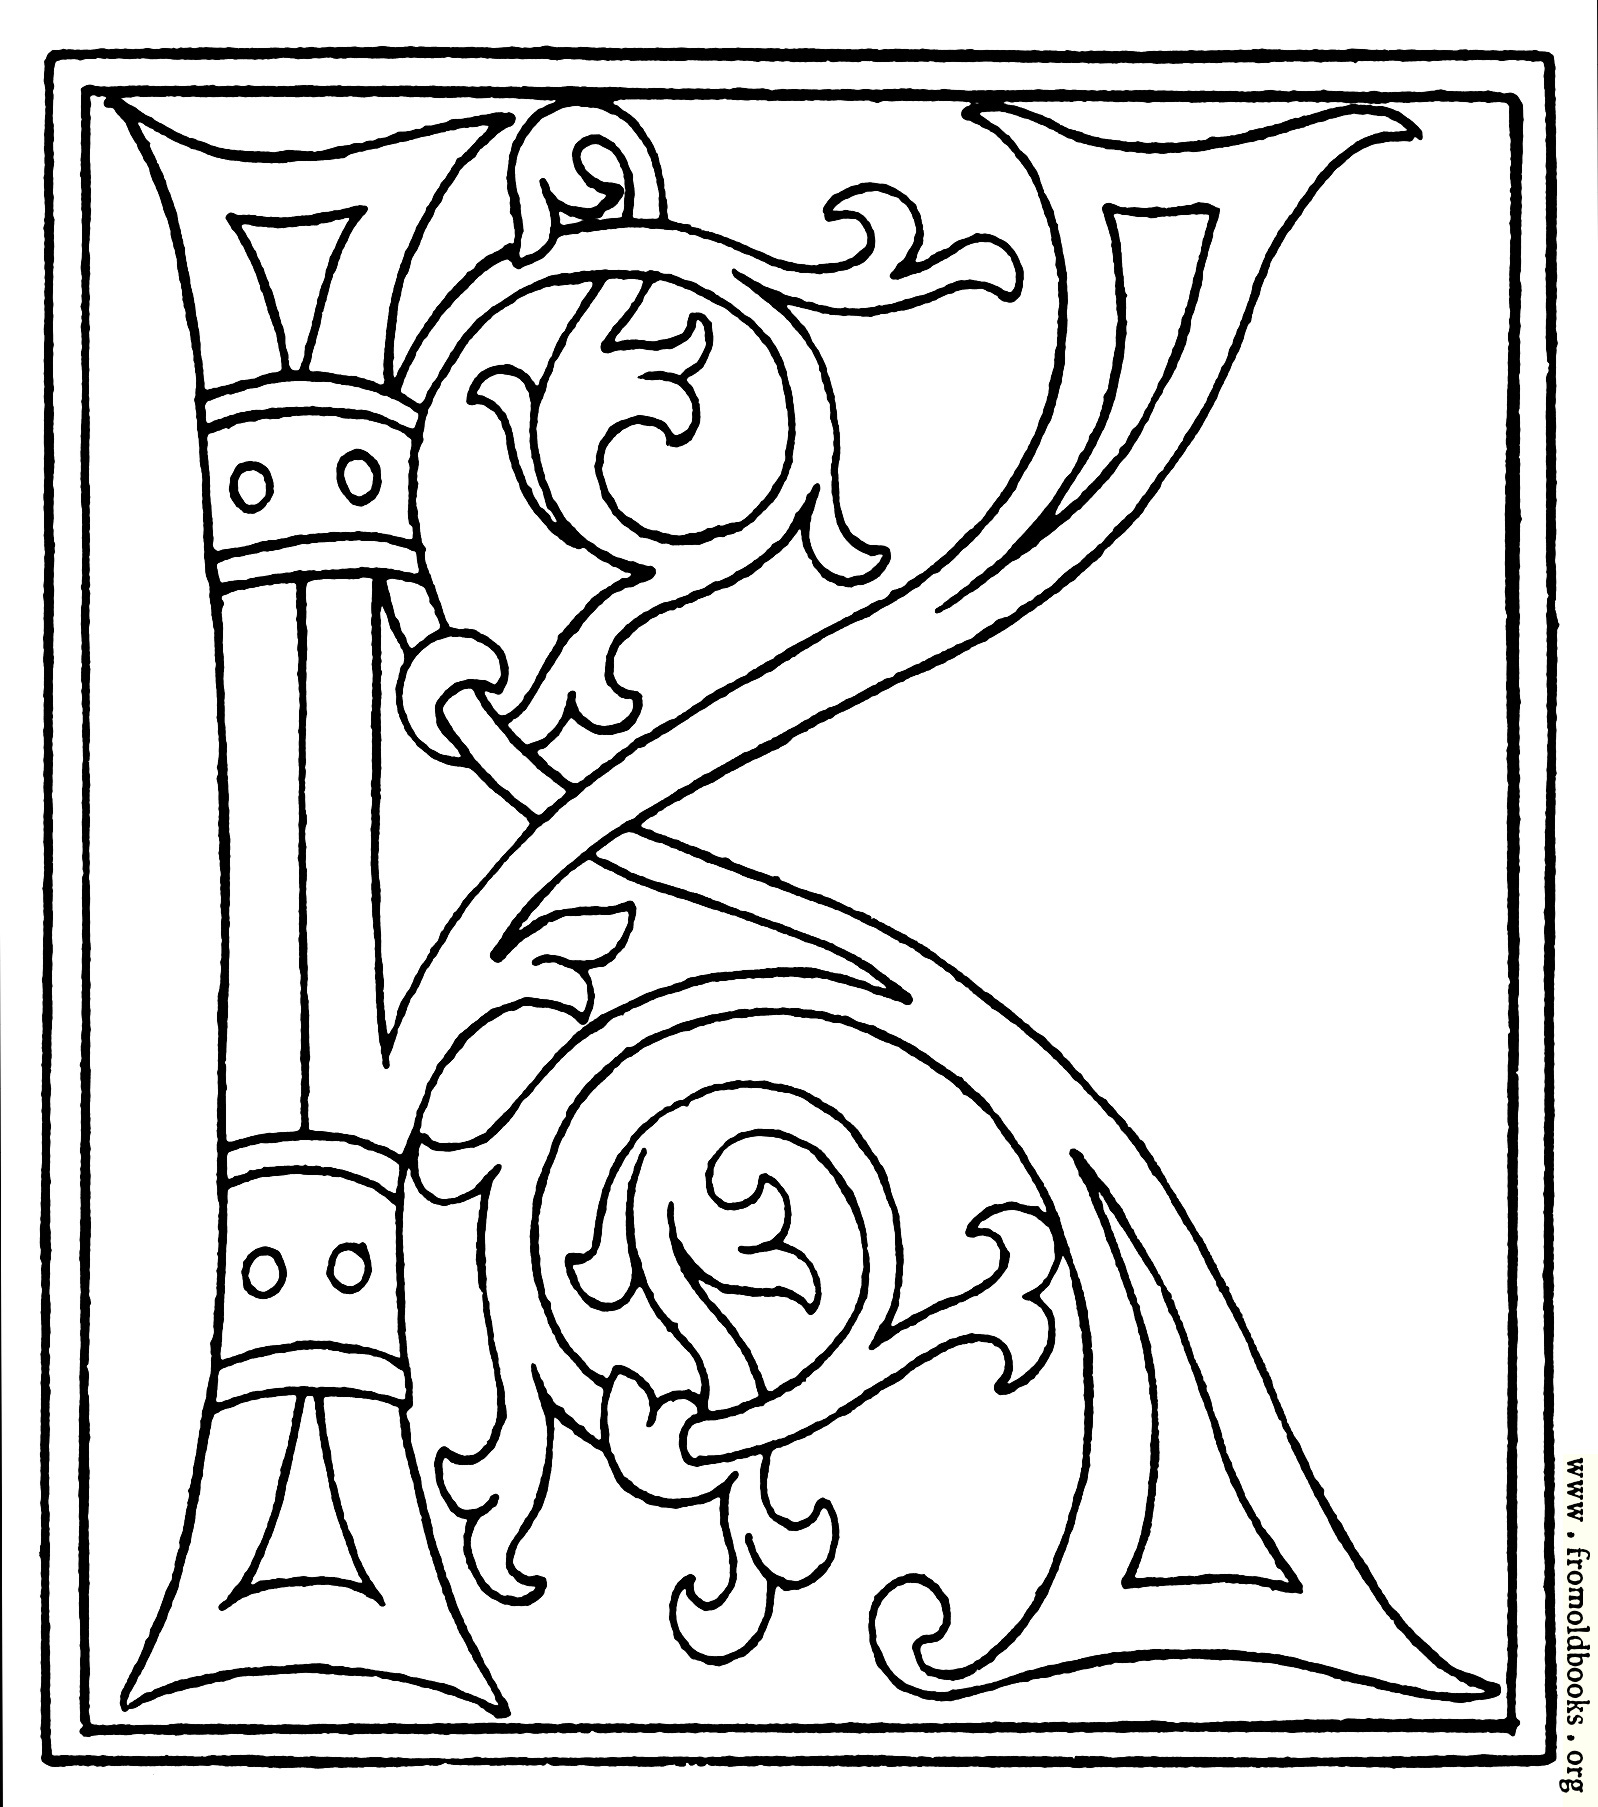 clipart initial letter k from late 15th century printed book